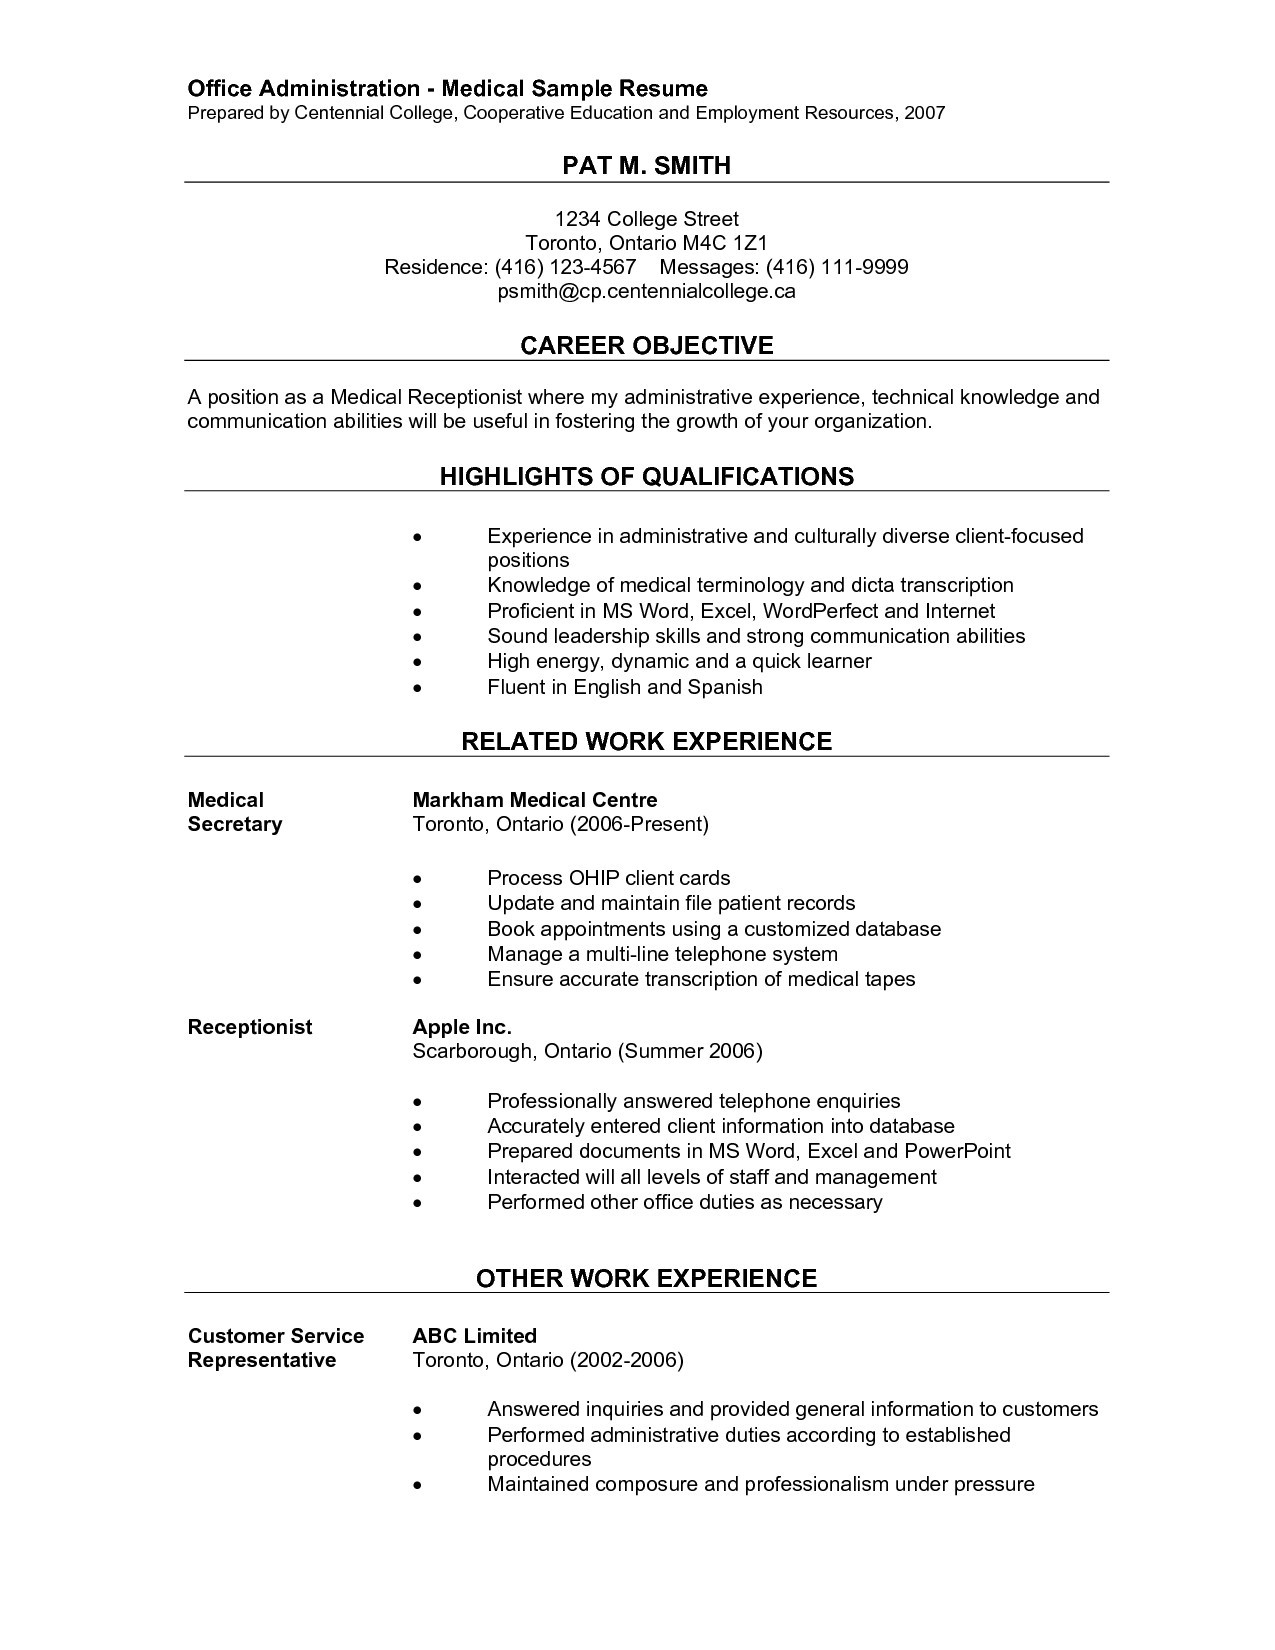 Glassdoor Resume Critique - Receptionist Duties for Resume